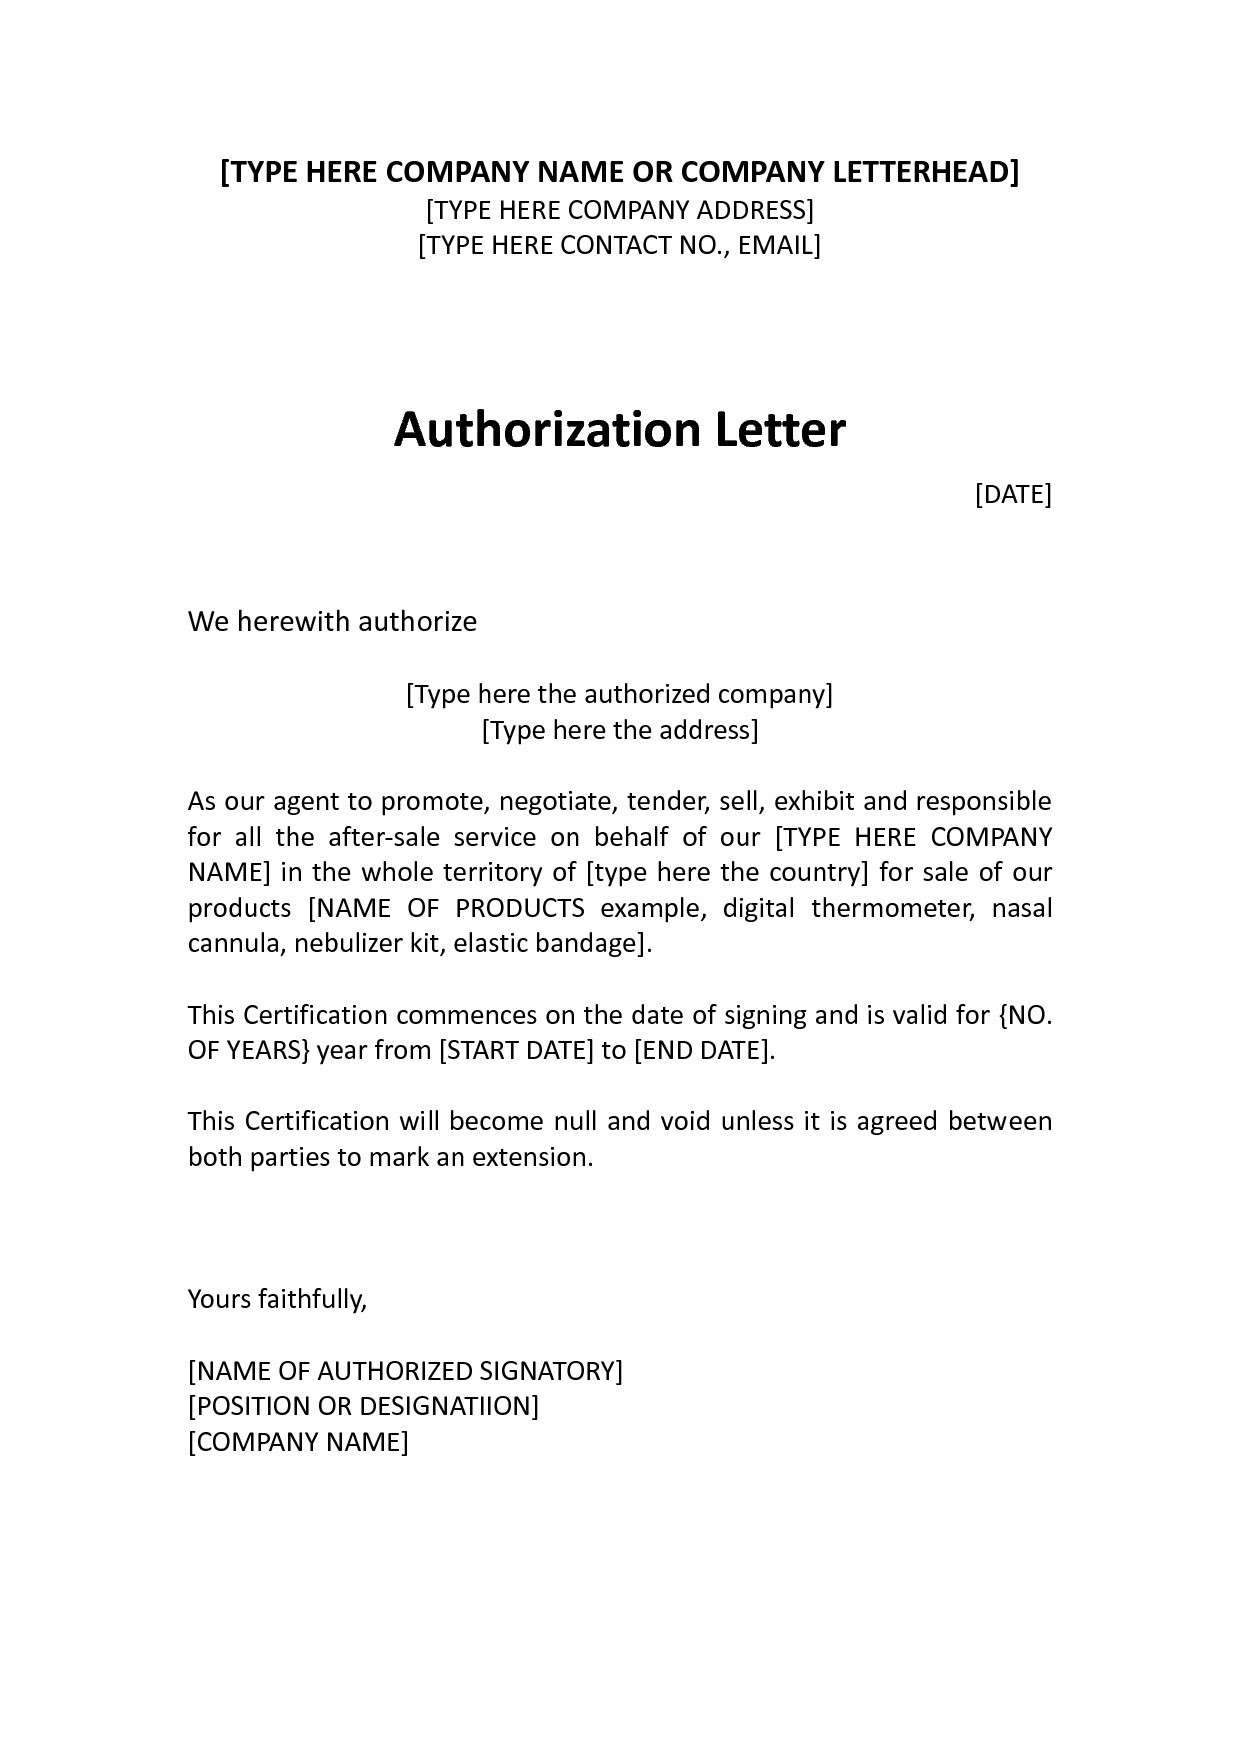 Letter of Authorization Form Sample